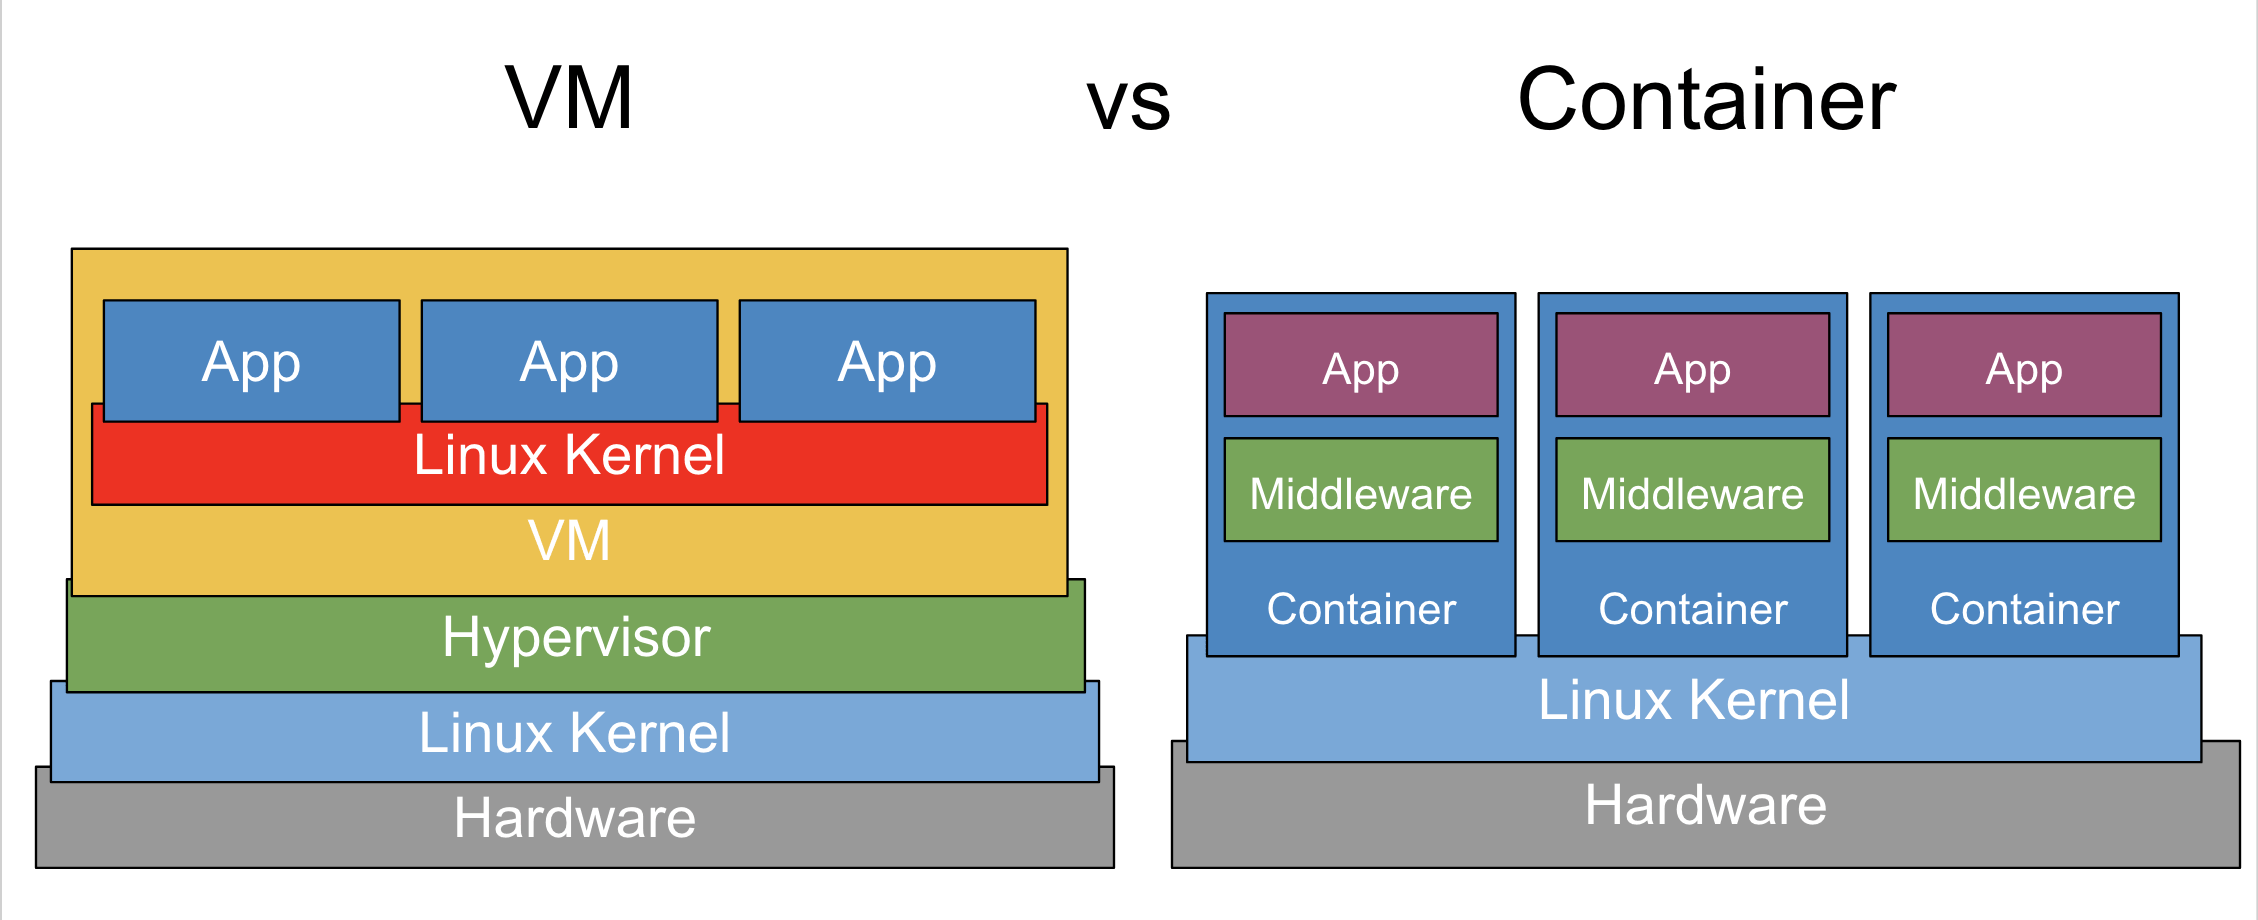 Container vs VM: When and Why?